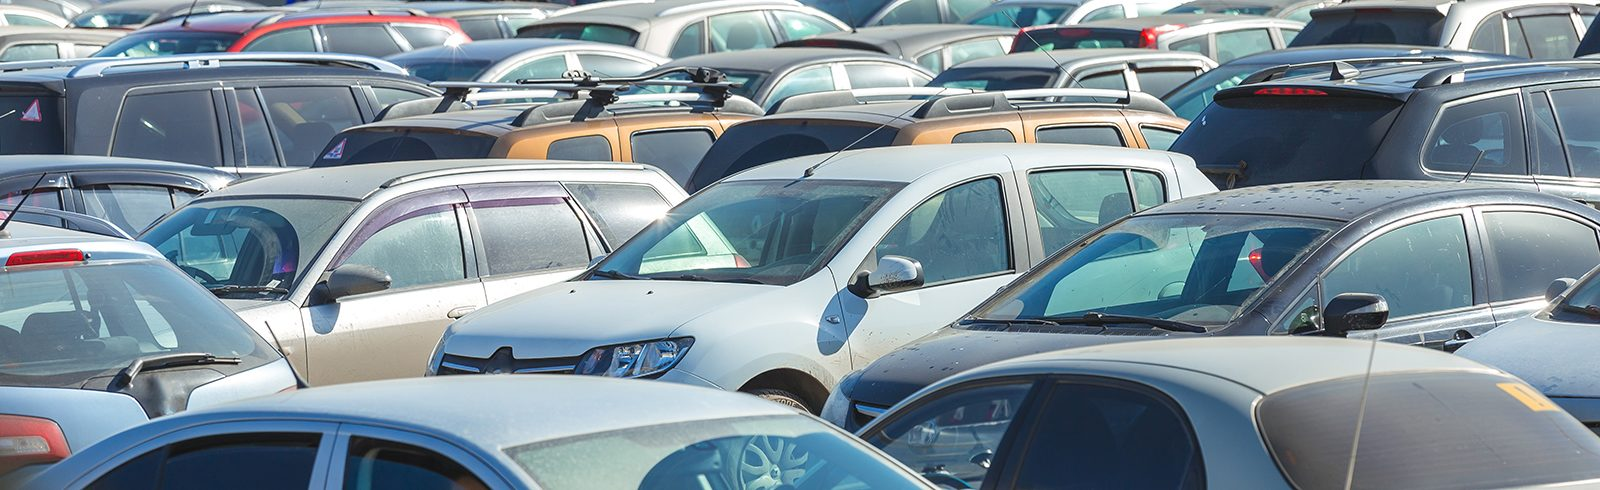 Cash For Cars San Diego >> San Diego Cash For Clunkers Top Cash For Clunkers